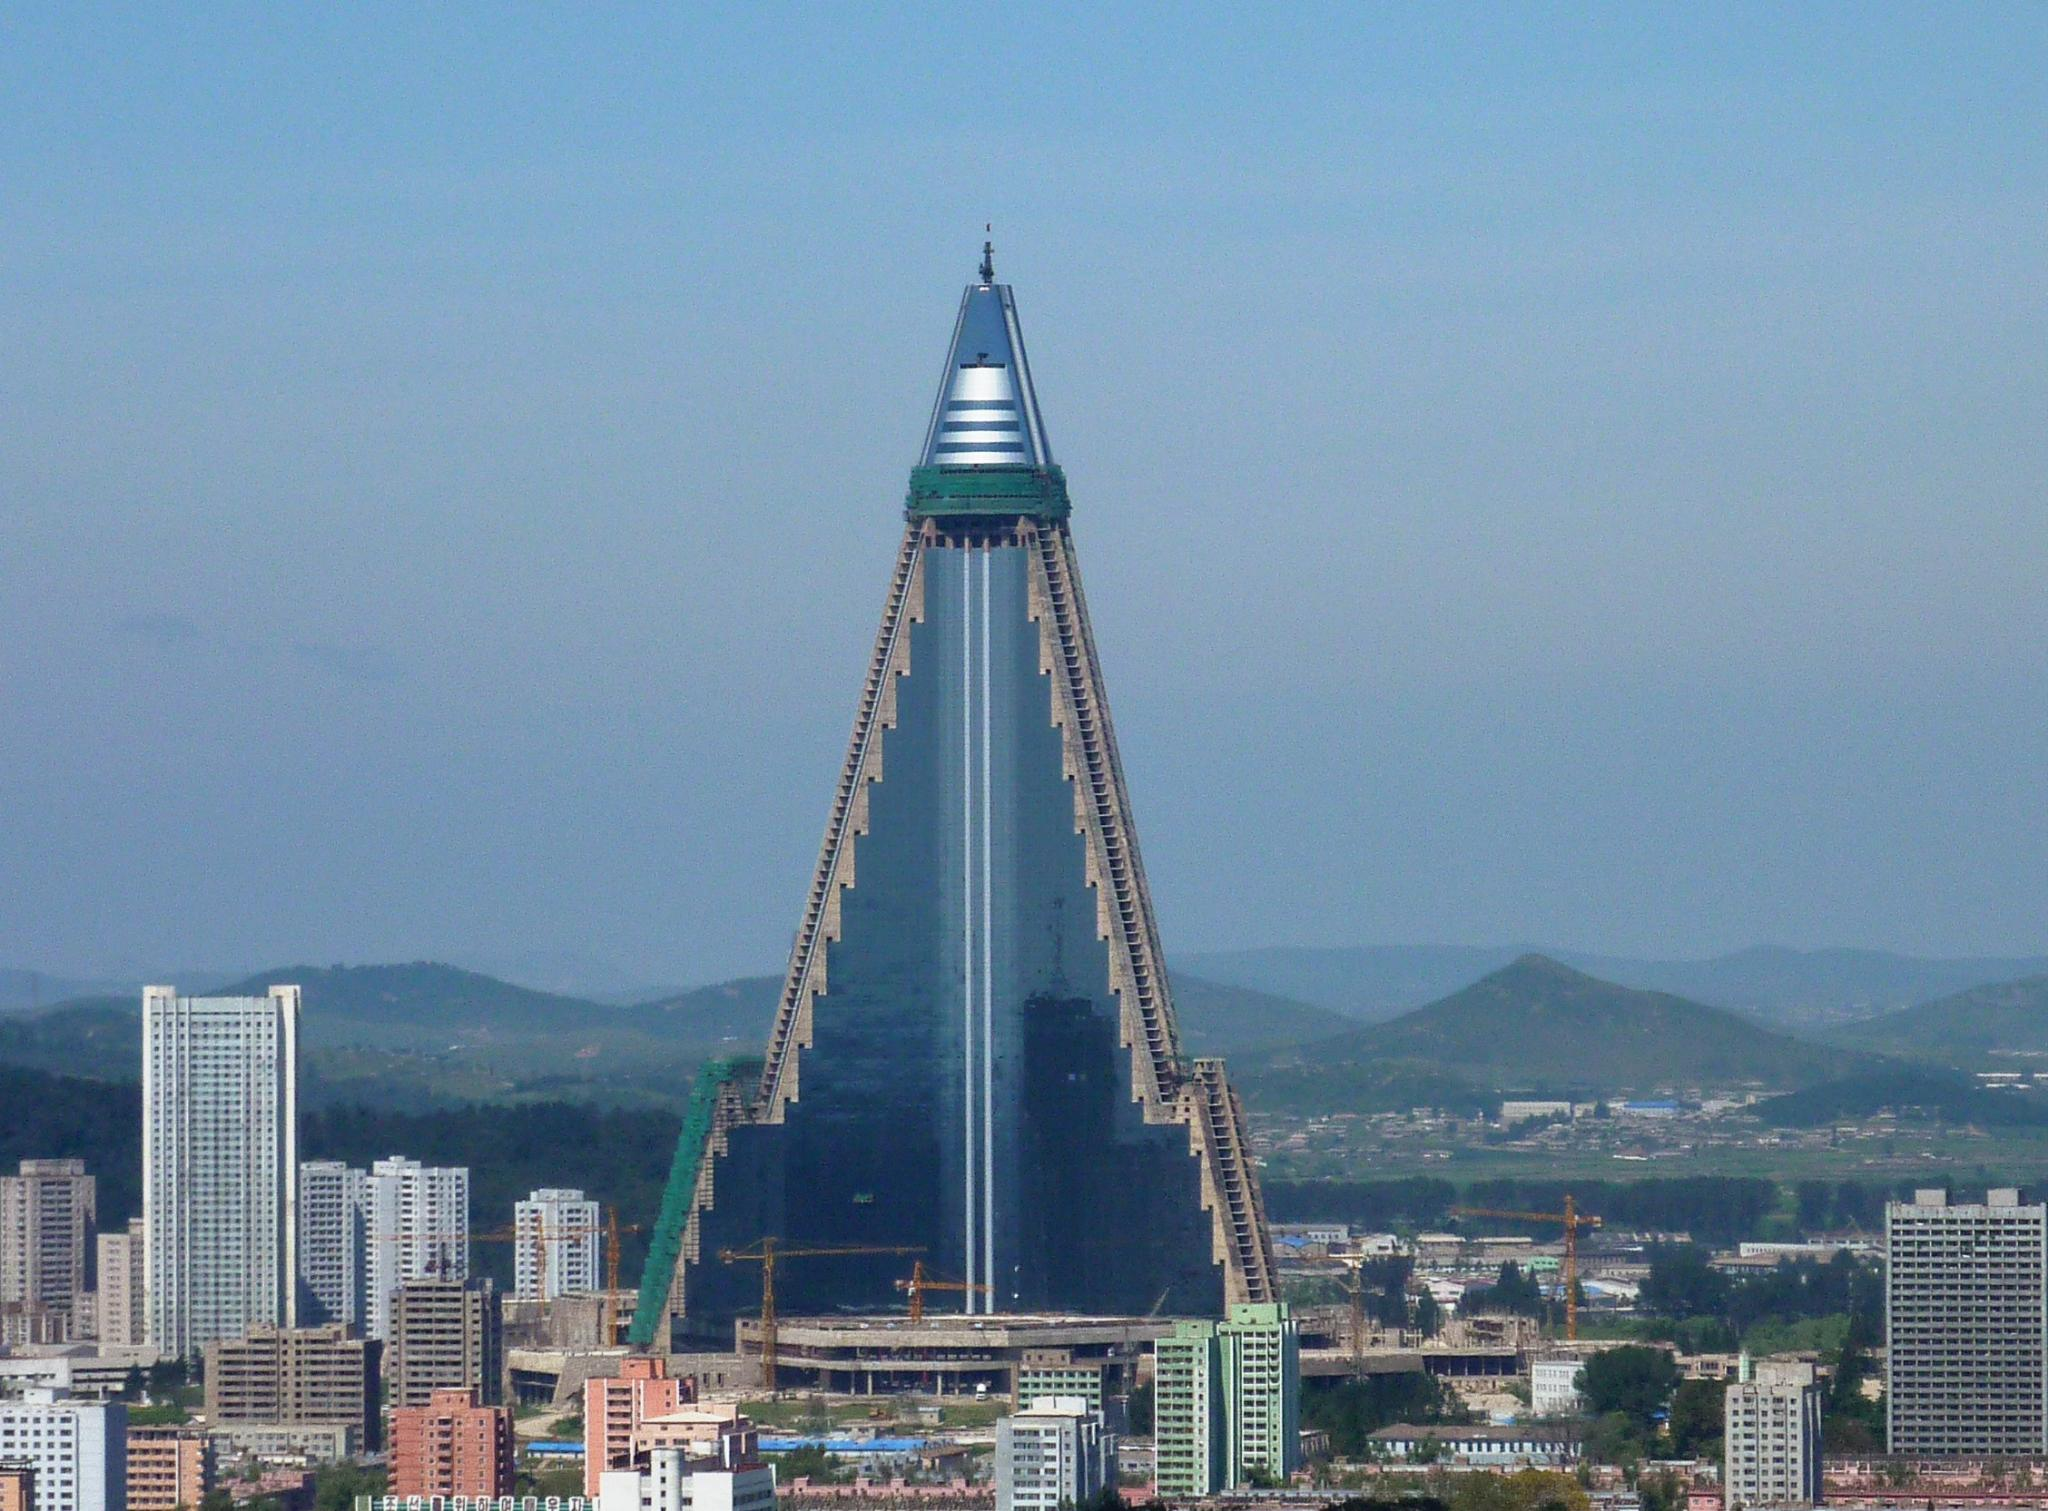 N. Korea's skyscraper hotel being built